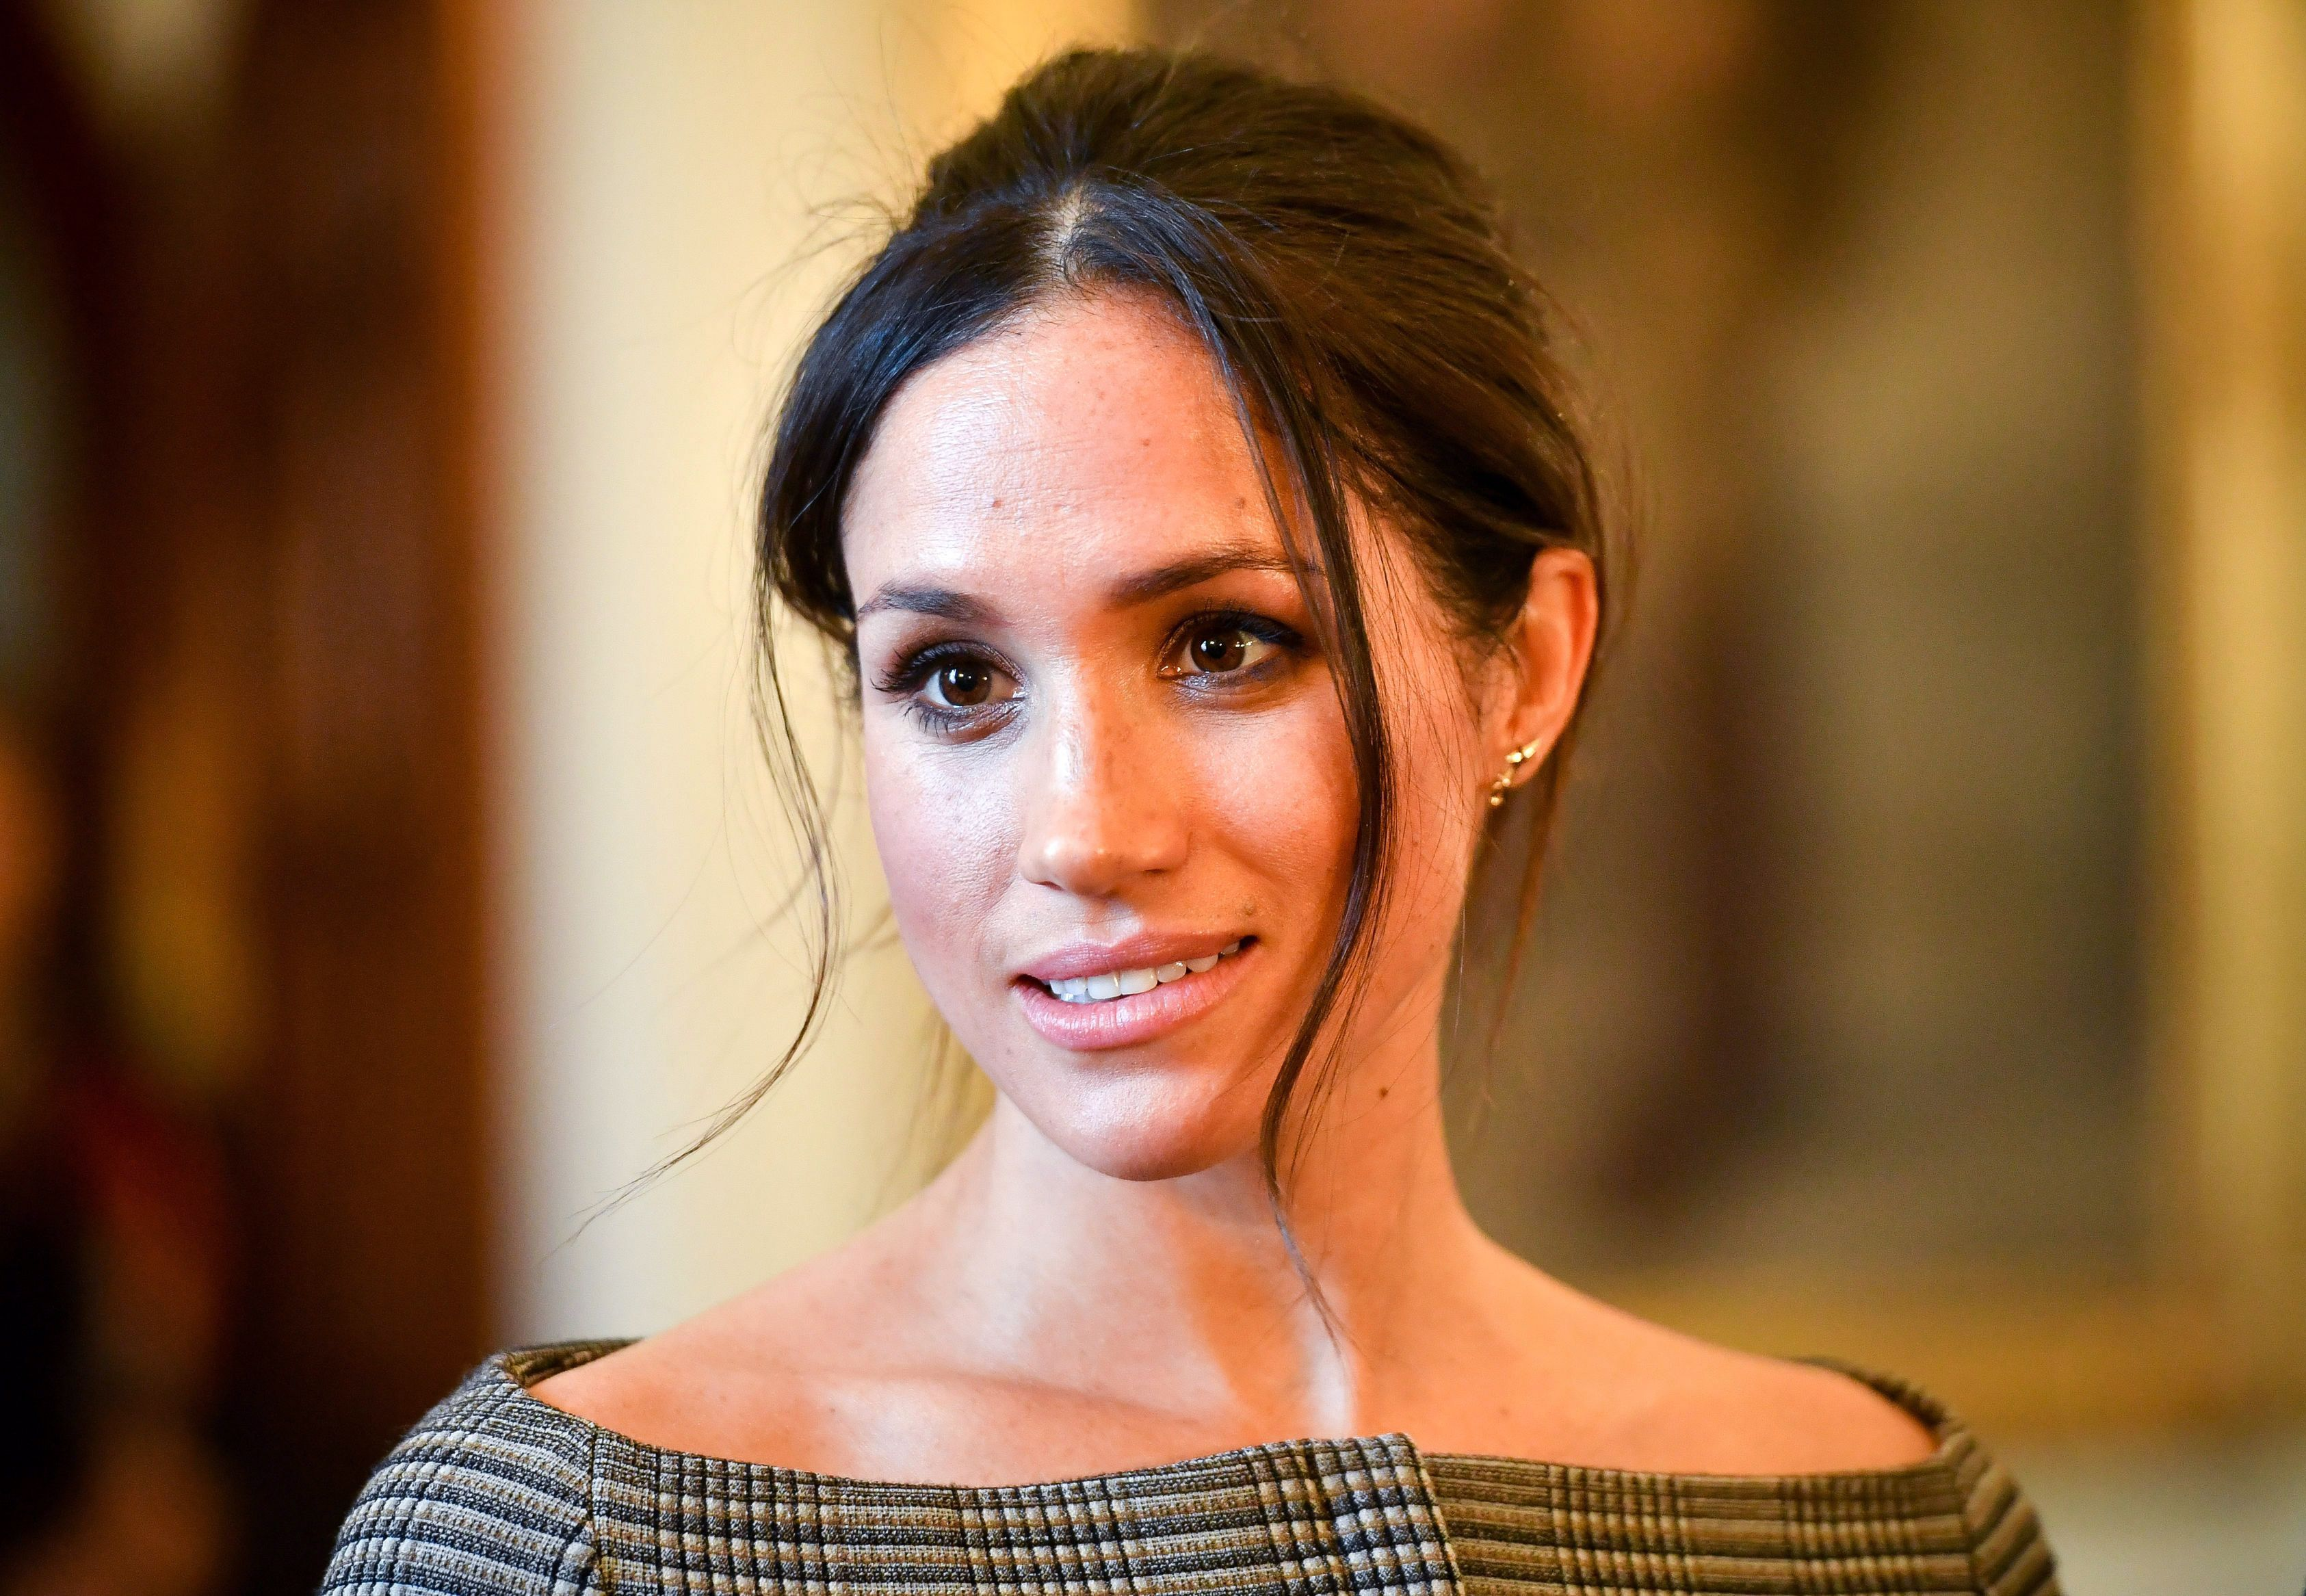 Meghan Markle Sends an Encouraging Voicemail to Her Longtime Pen Pal